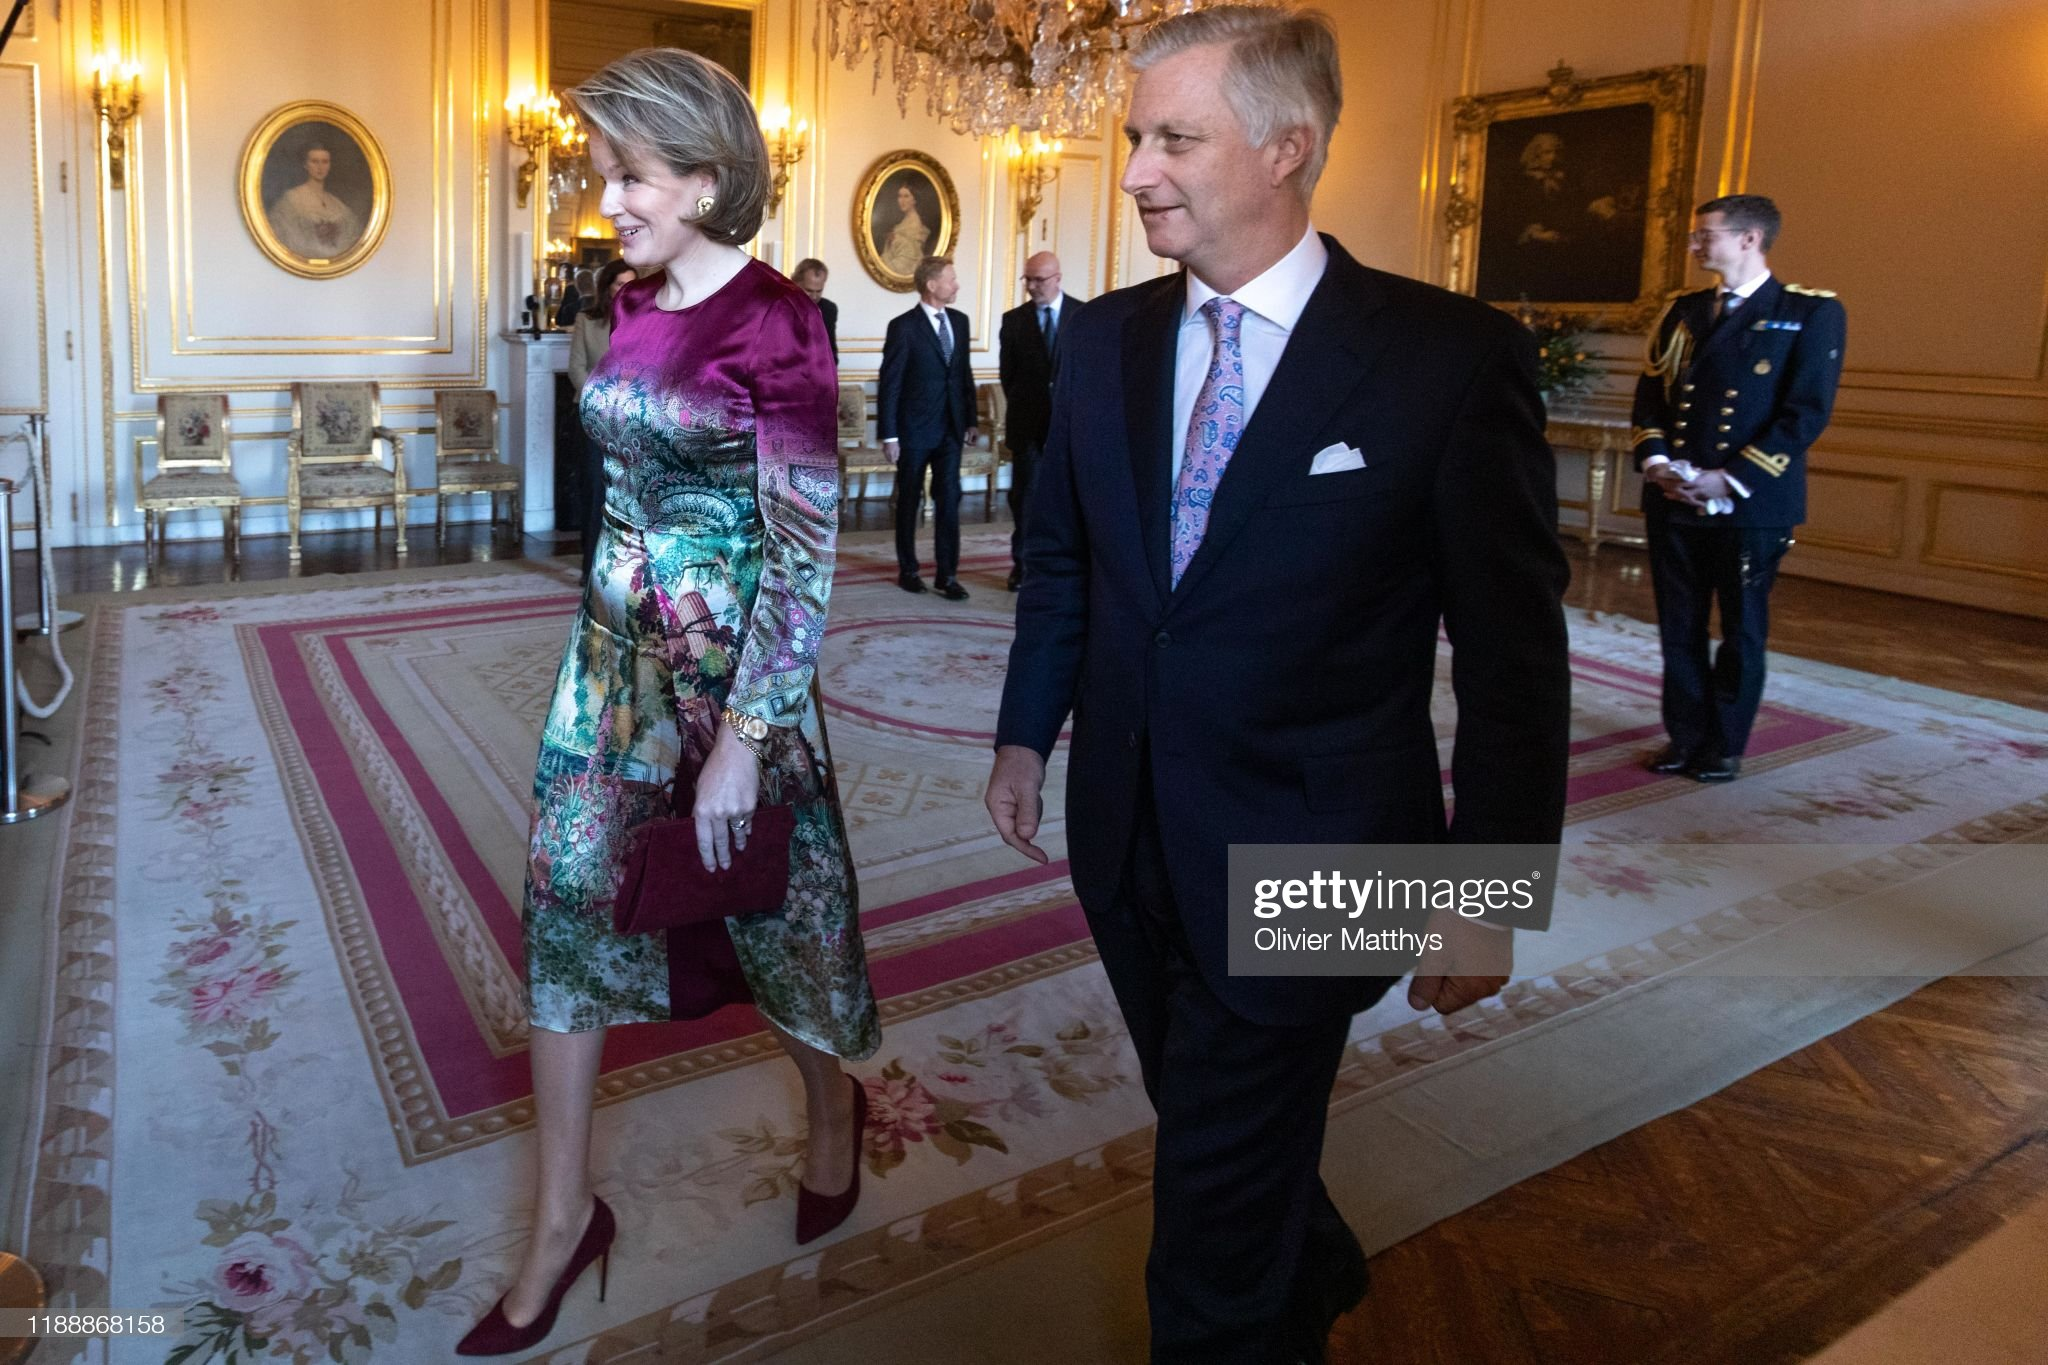 CASA REAL BELGA - Página 85 King-philippe-of-belgium-and-queen-mathilde-arrive-in-the-royal-to-picture-id1188868158?s=2048x2048